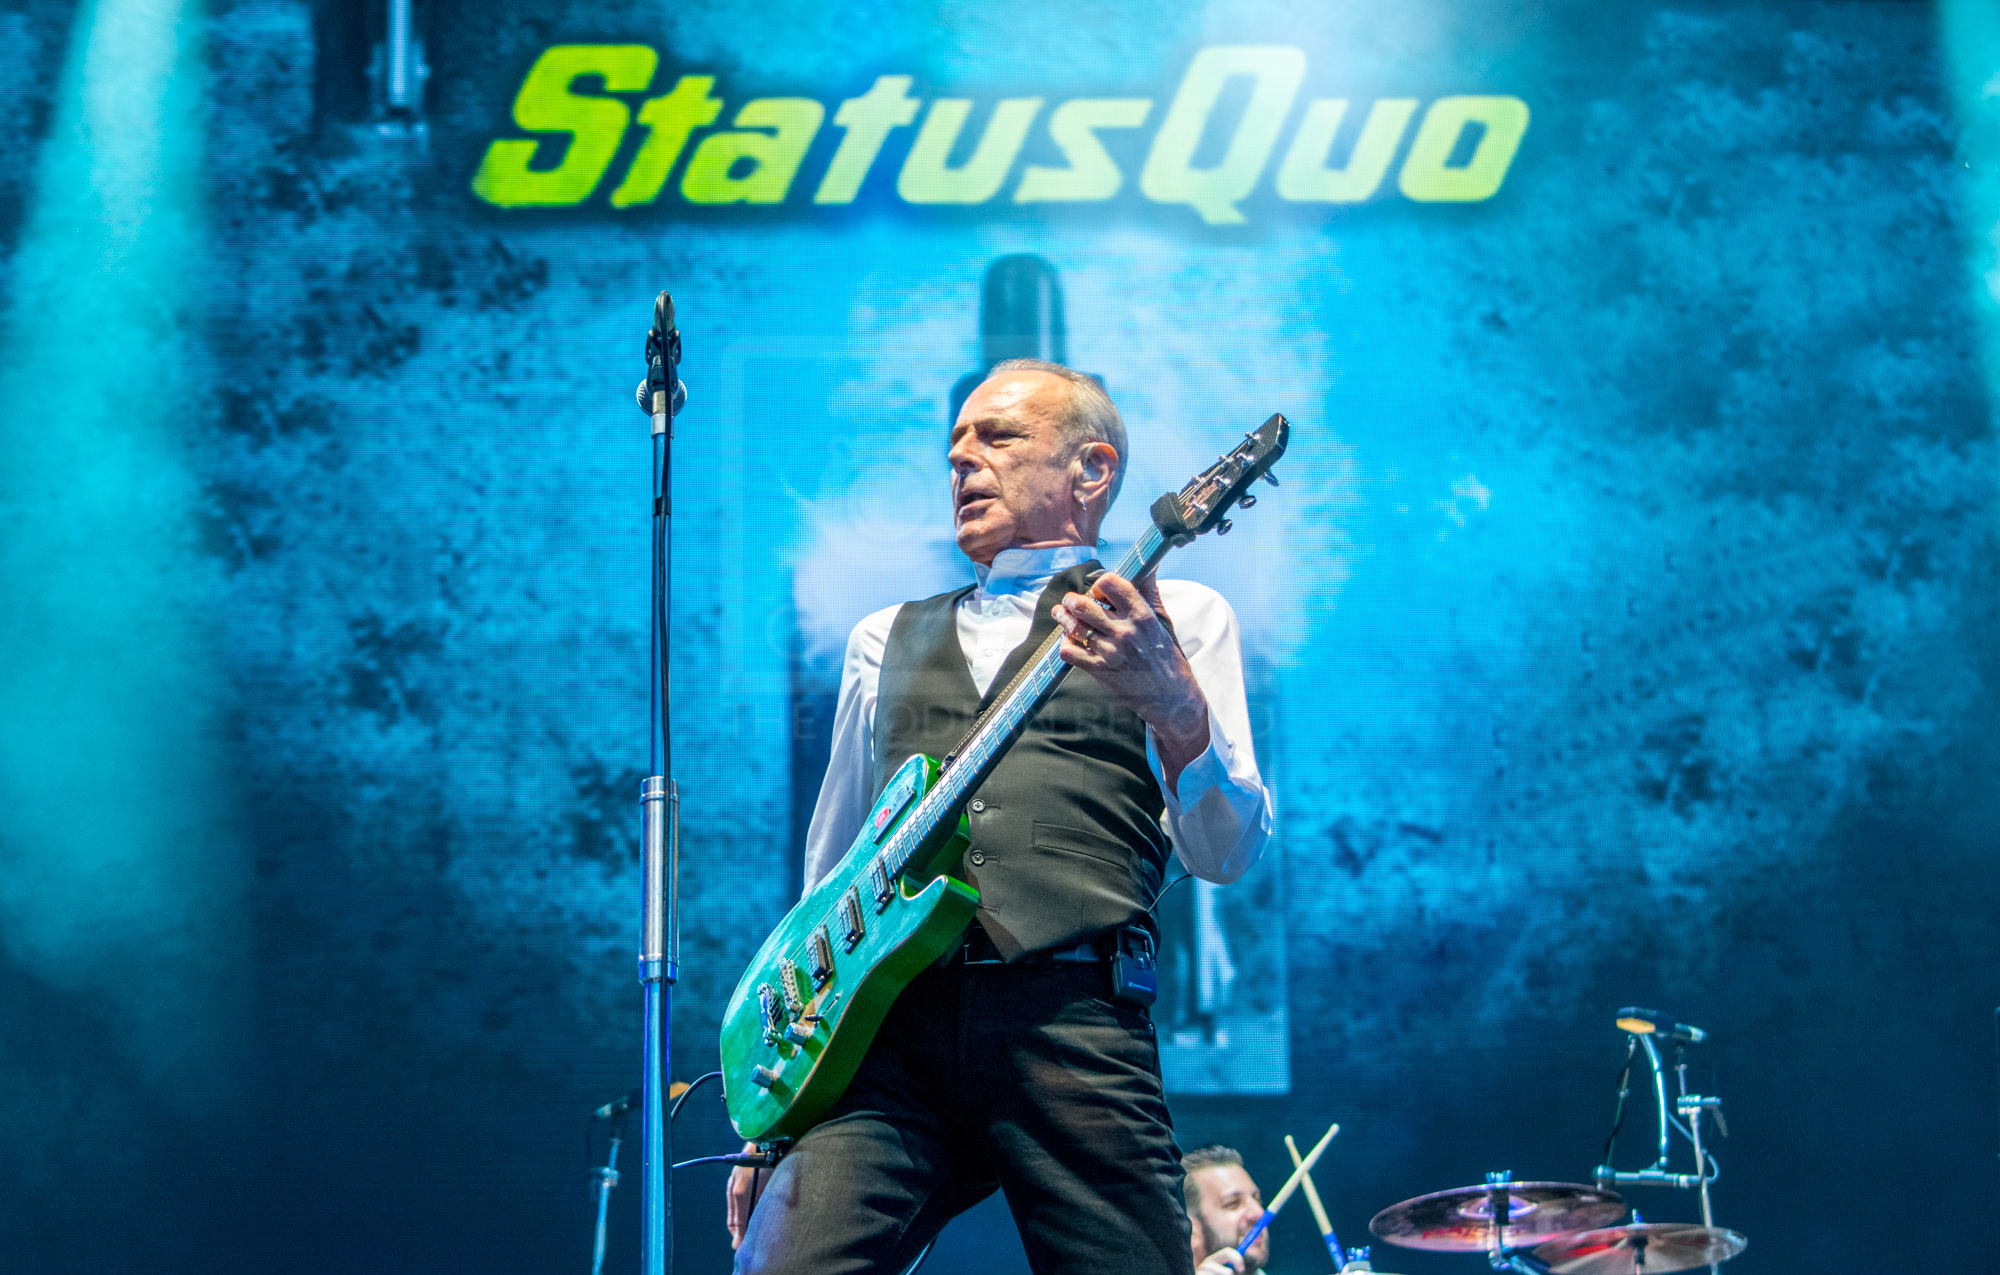 STATUS QUO PERFORMING AT REWIND! SCOTLAND - SUNDAY - 22.08.2018  PICTURE BY: STEPHEN WILSON PHOTOGRAPHY